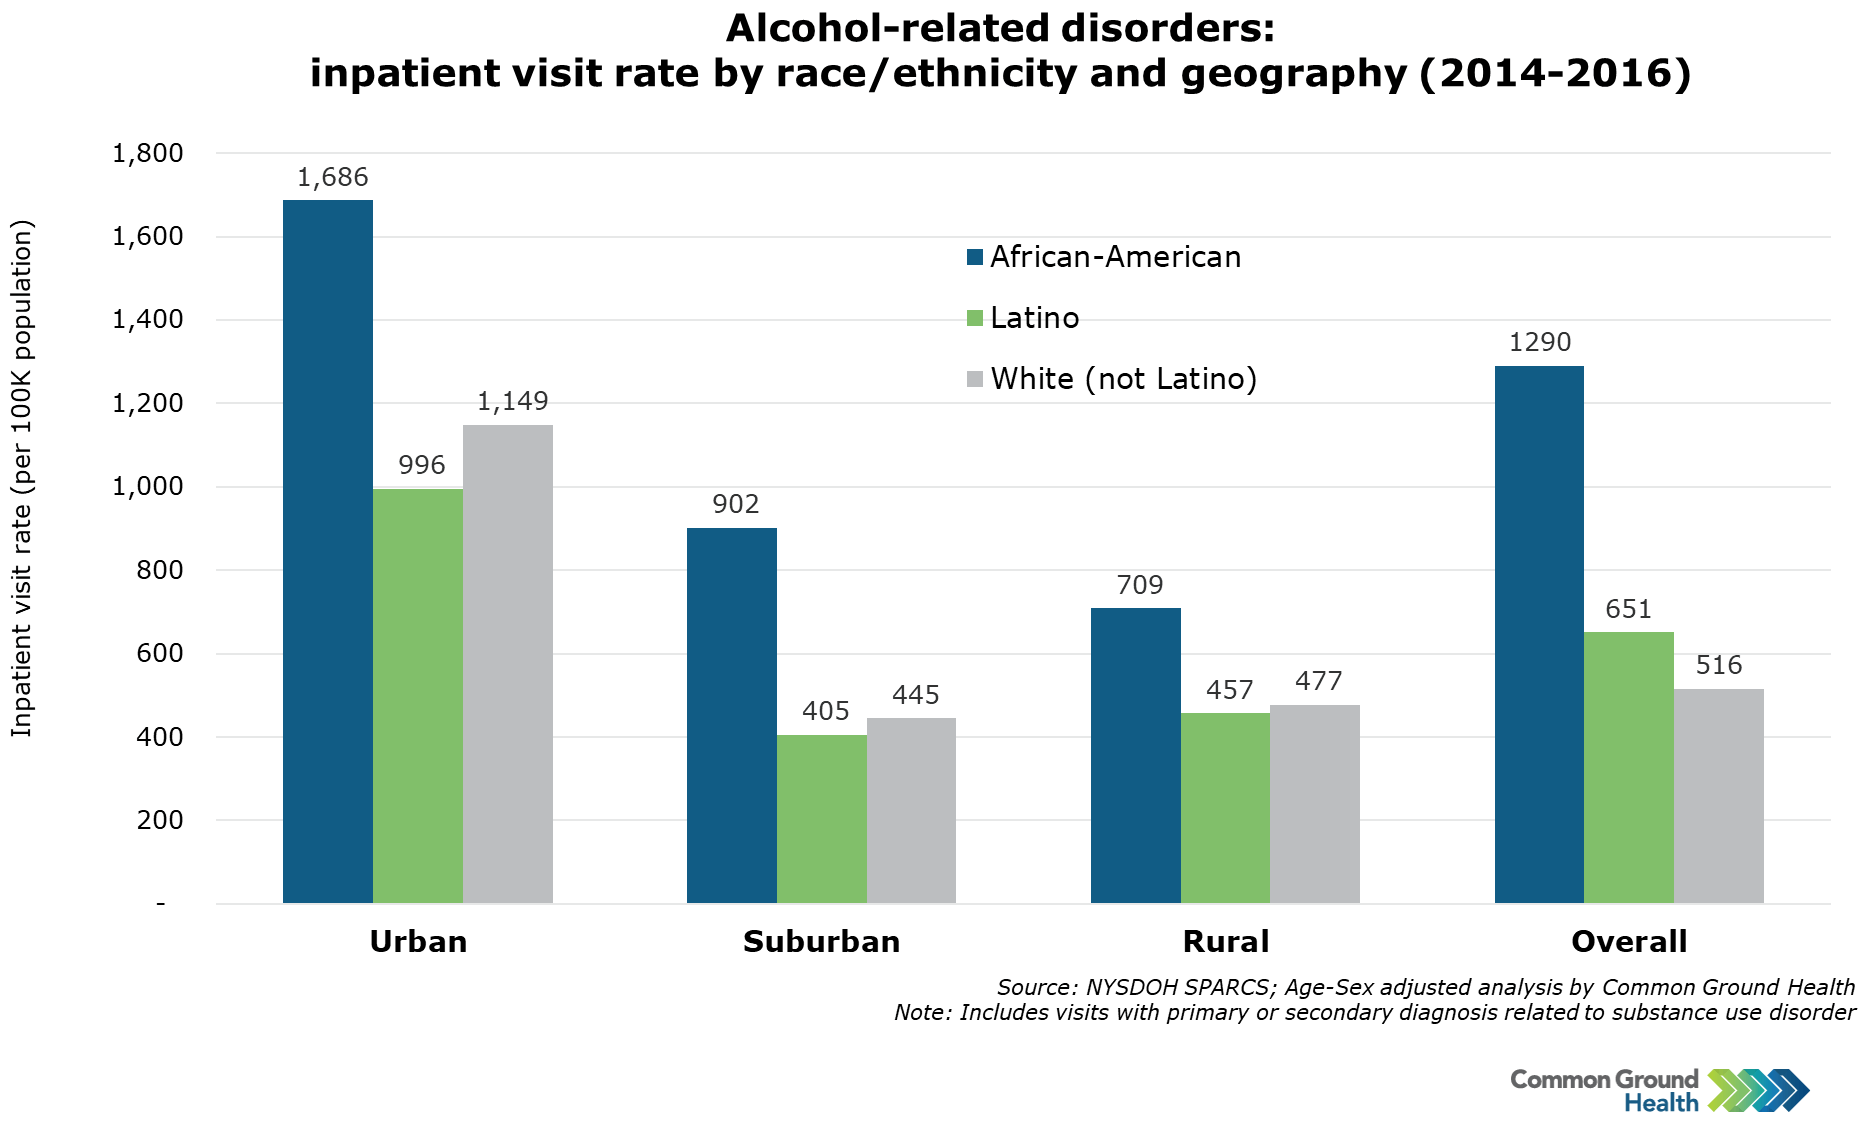 Alcohol-Related Disorders: Inpatient Visit Rate by Race/Ethnicity and Geography